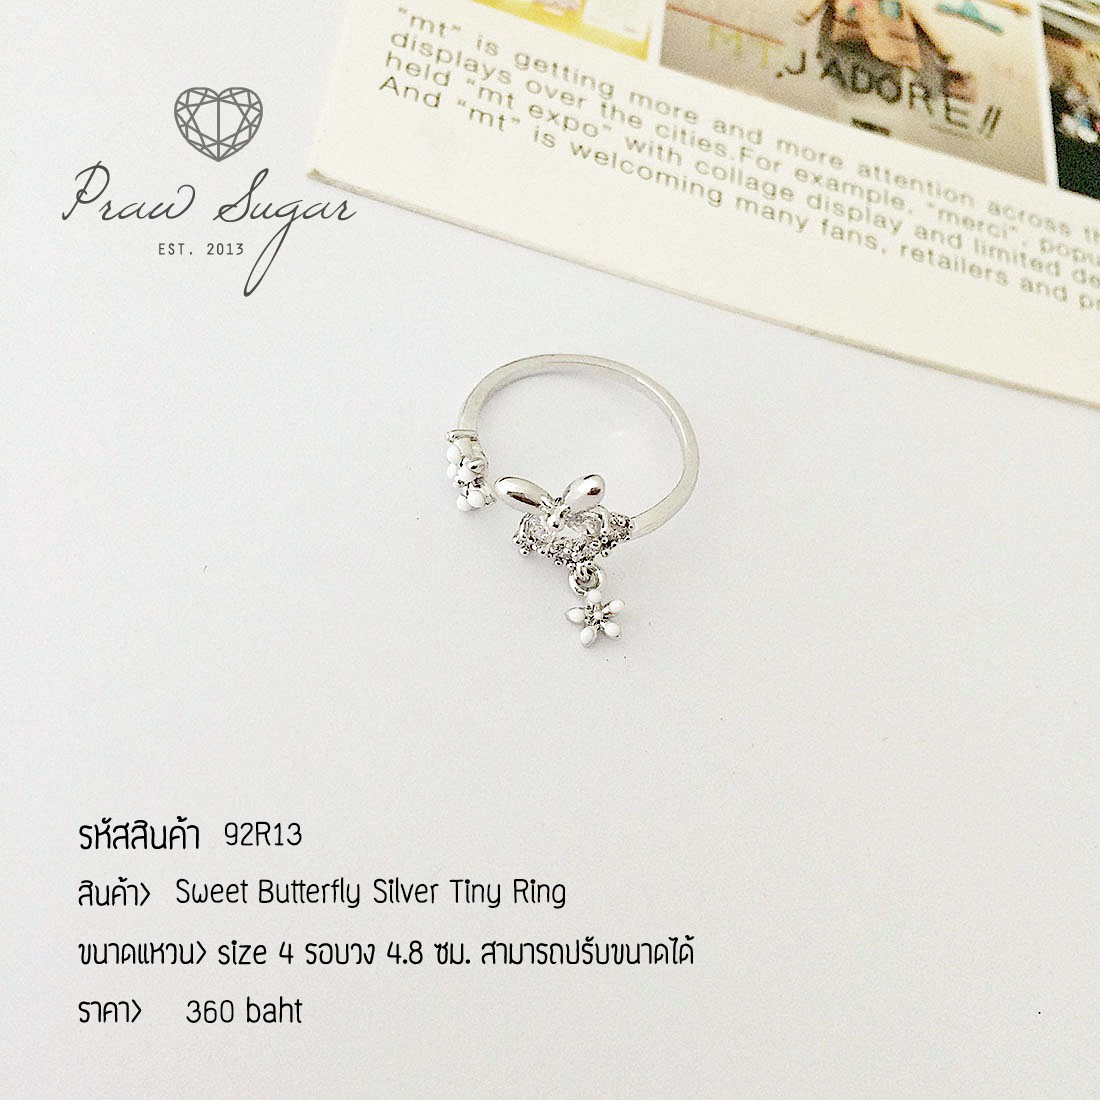 Sweet Butterfly Silver Tiny Ring